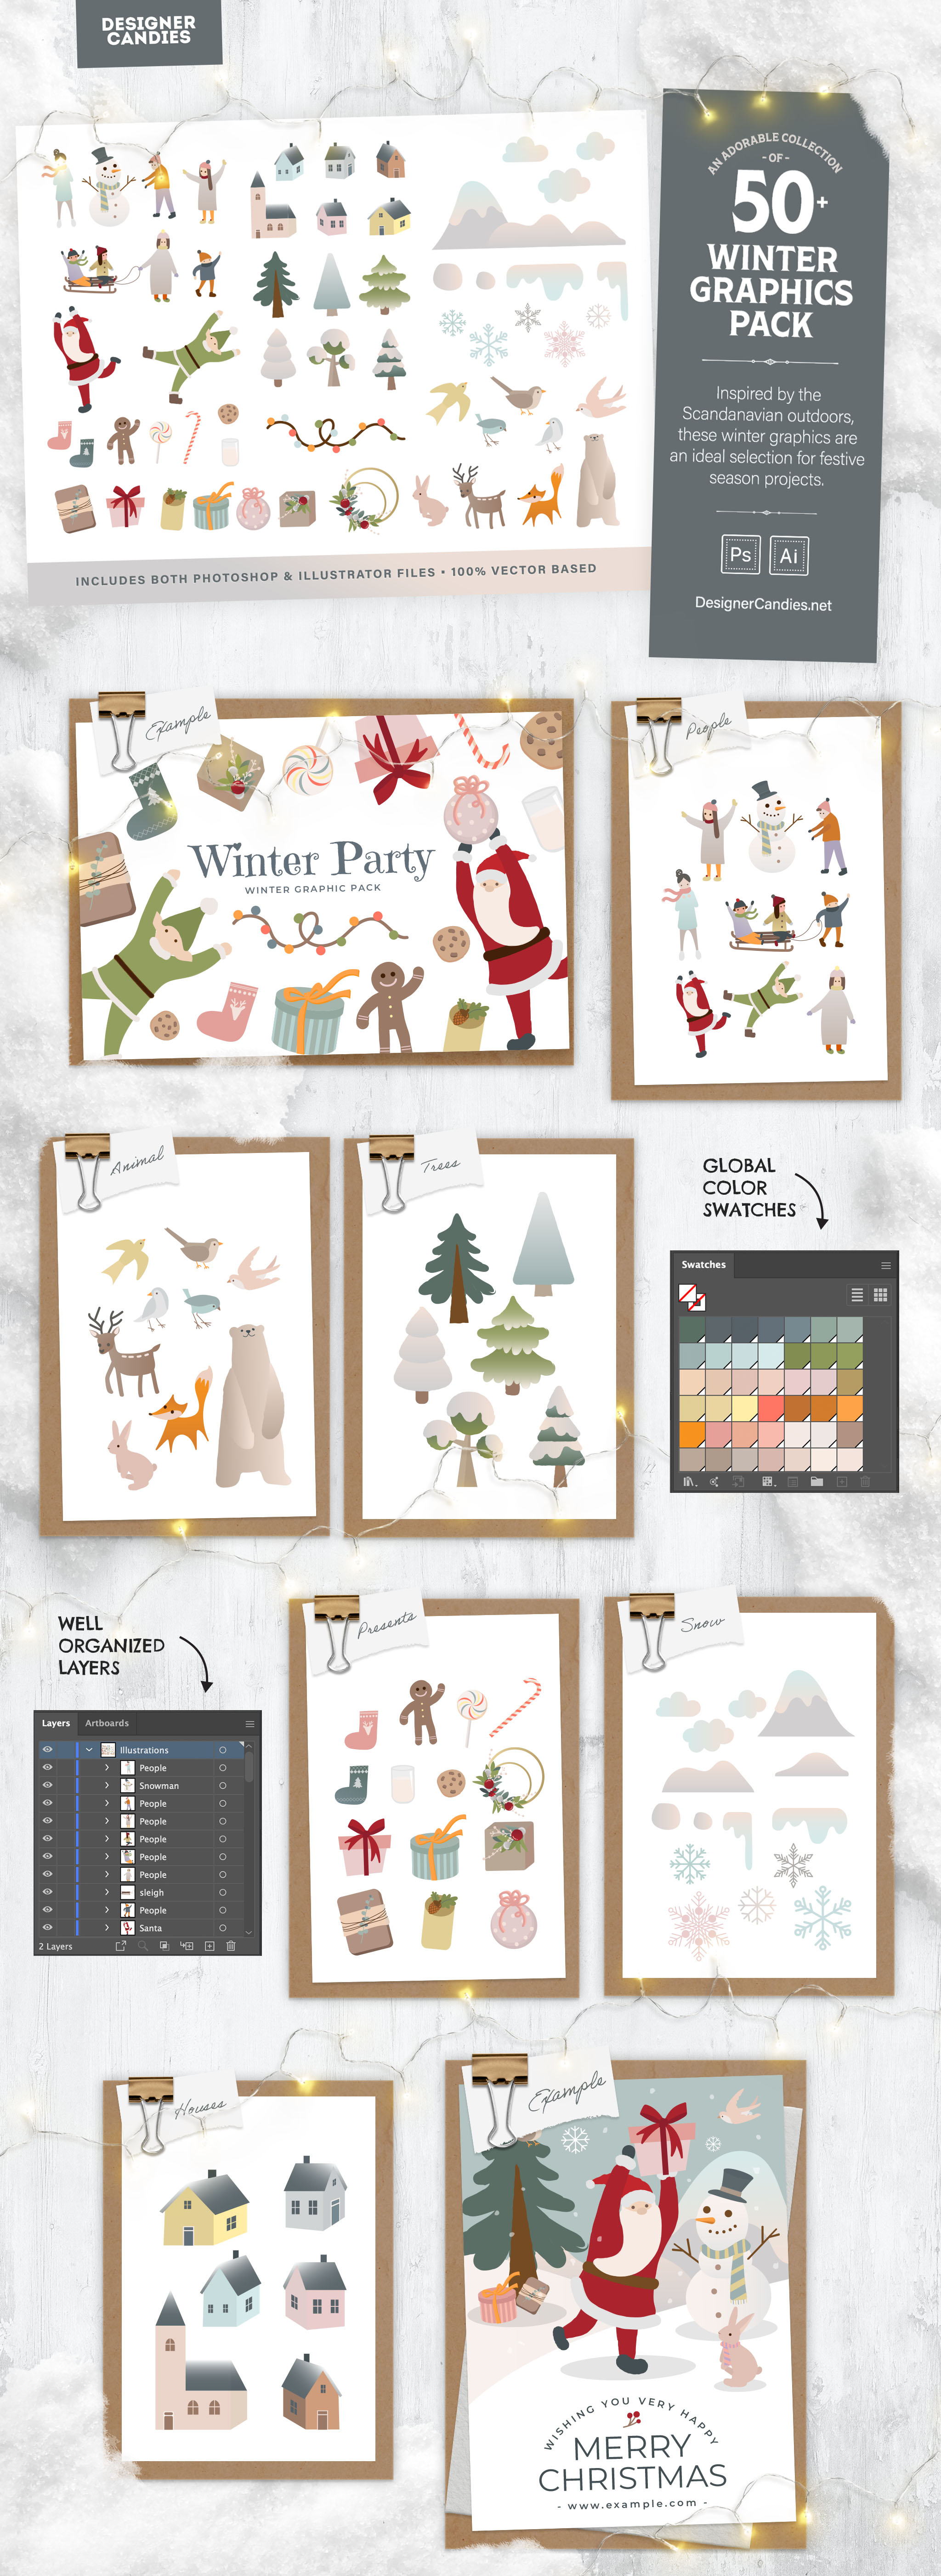 Winter Graphics Pack with 50 Vector Illustrations for Adobe Photoshop & Illustrator